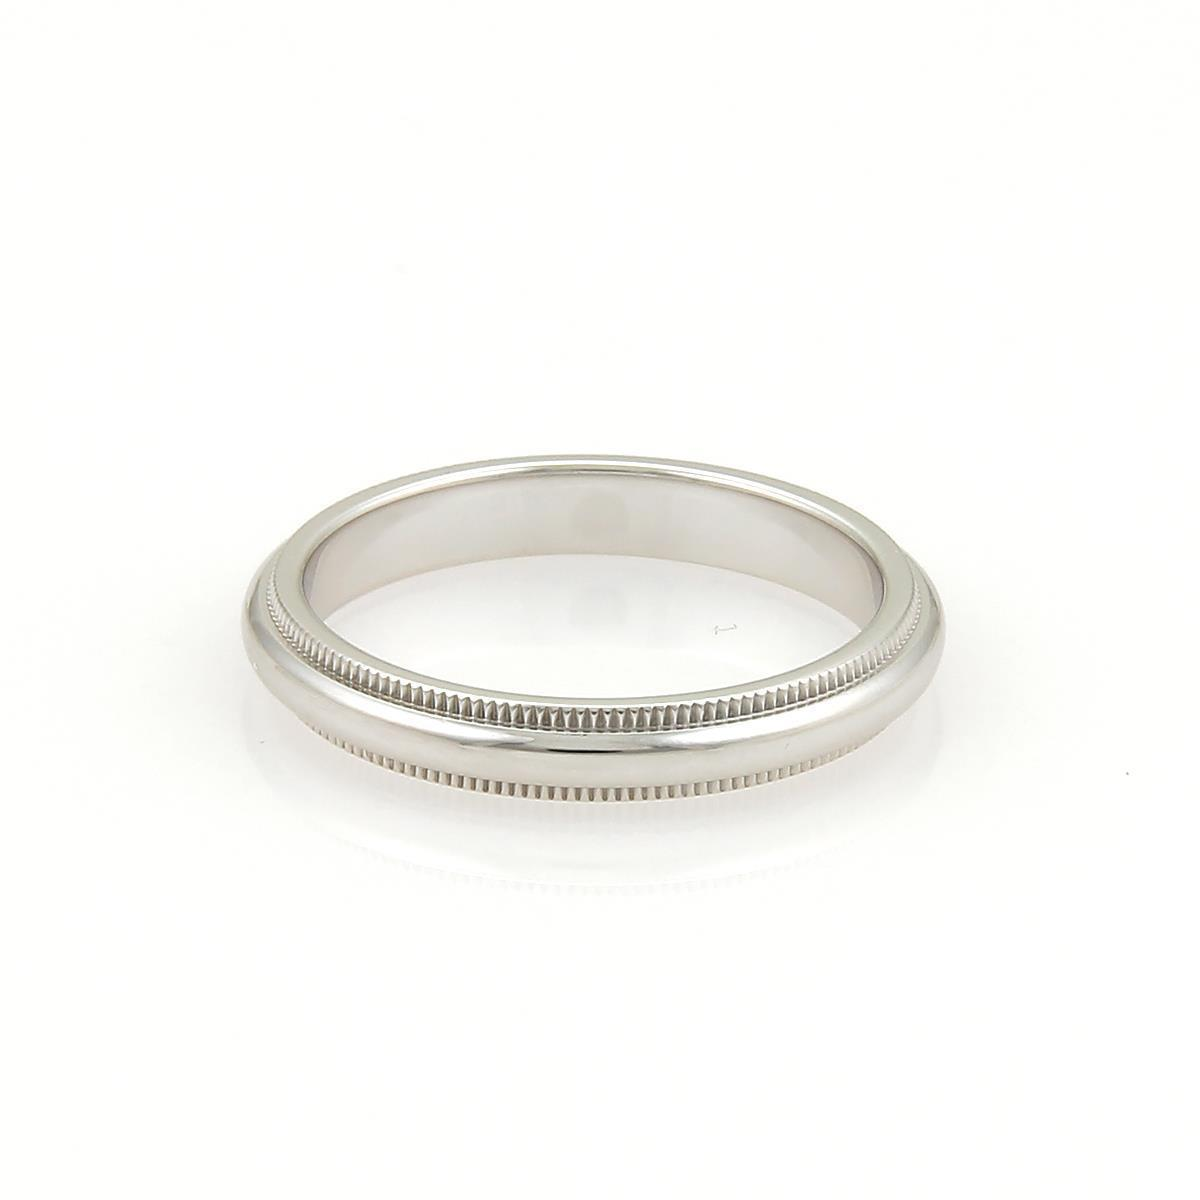 Platinum wedding bands for women size 35